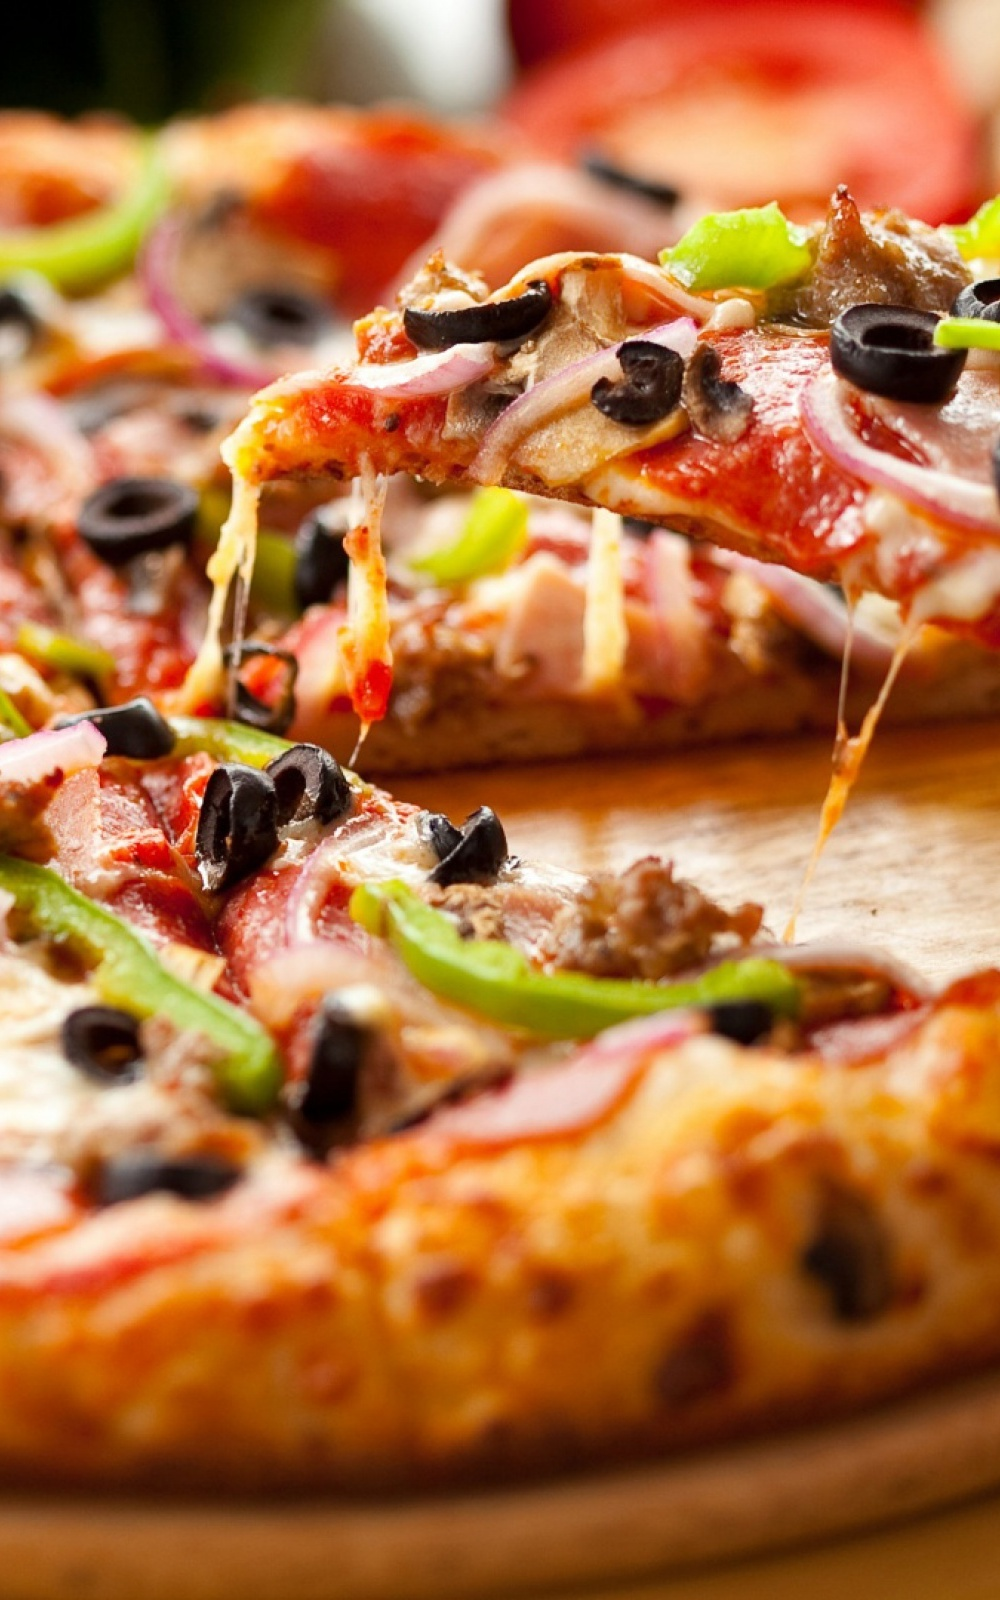 1000x1600 Slice Of Pizza Android Wallpaper free download